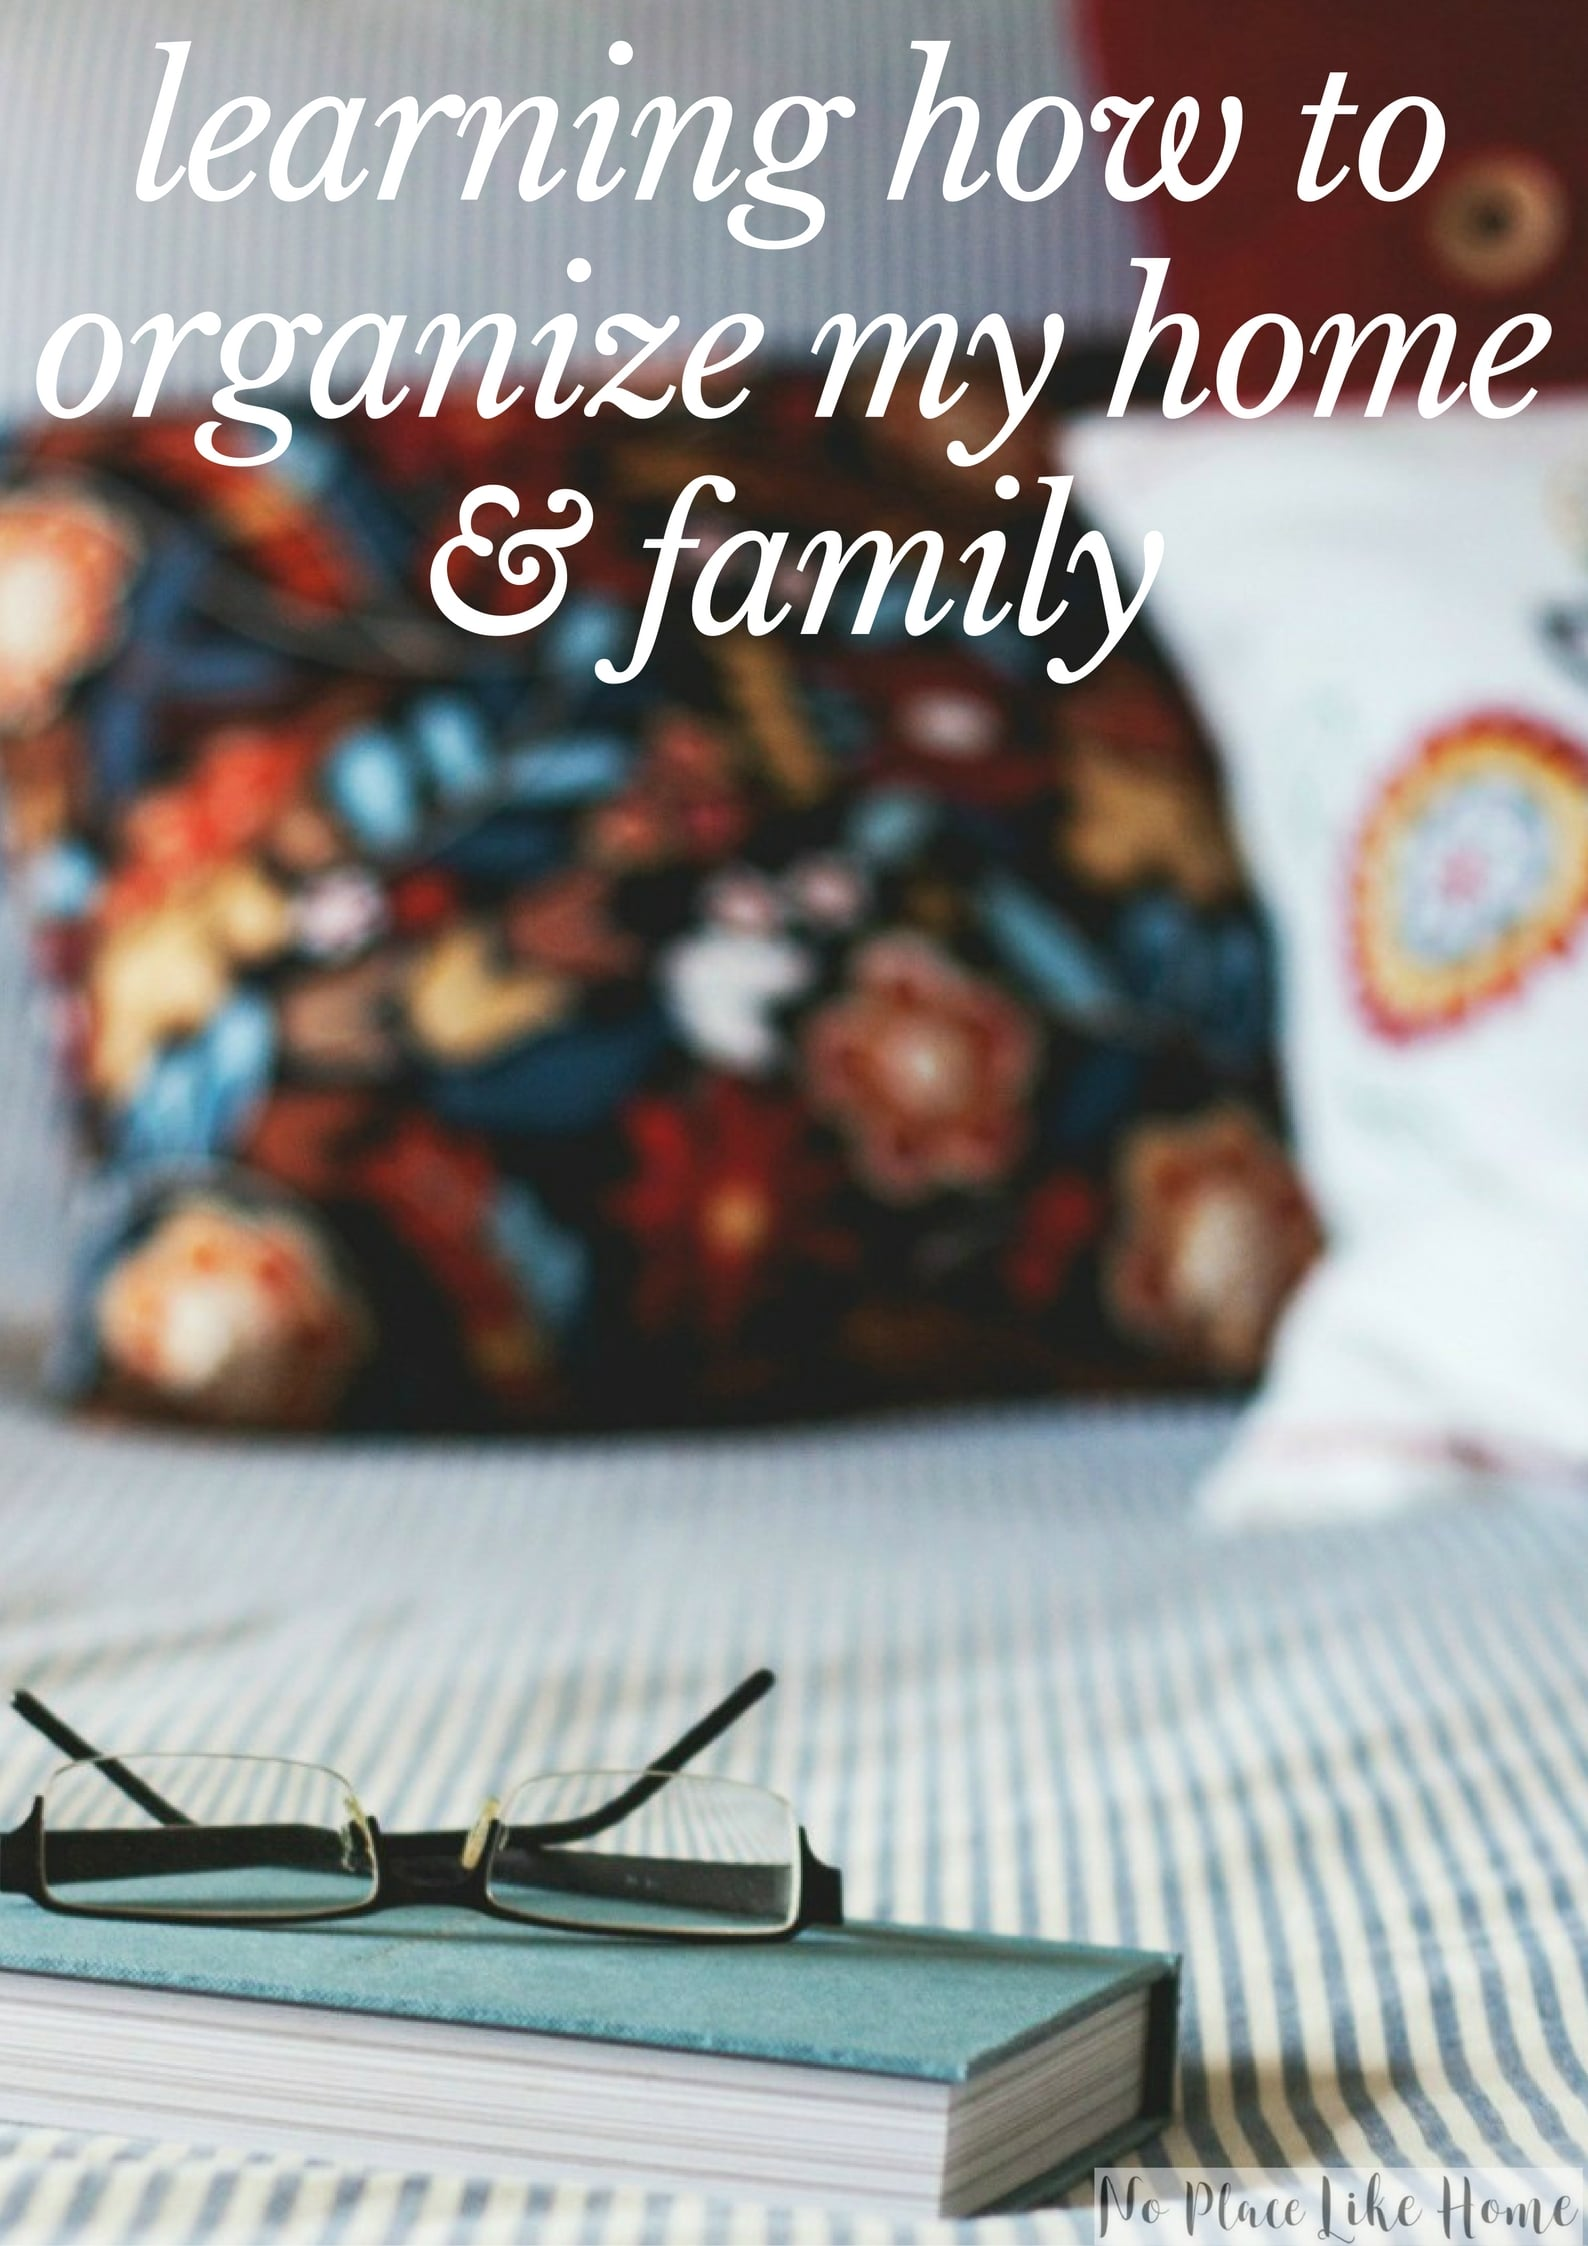 Organizing my home and family doesn't come naturally to me ... but with some helpful insight, I can get on the right track!